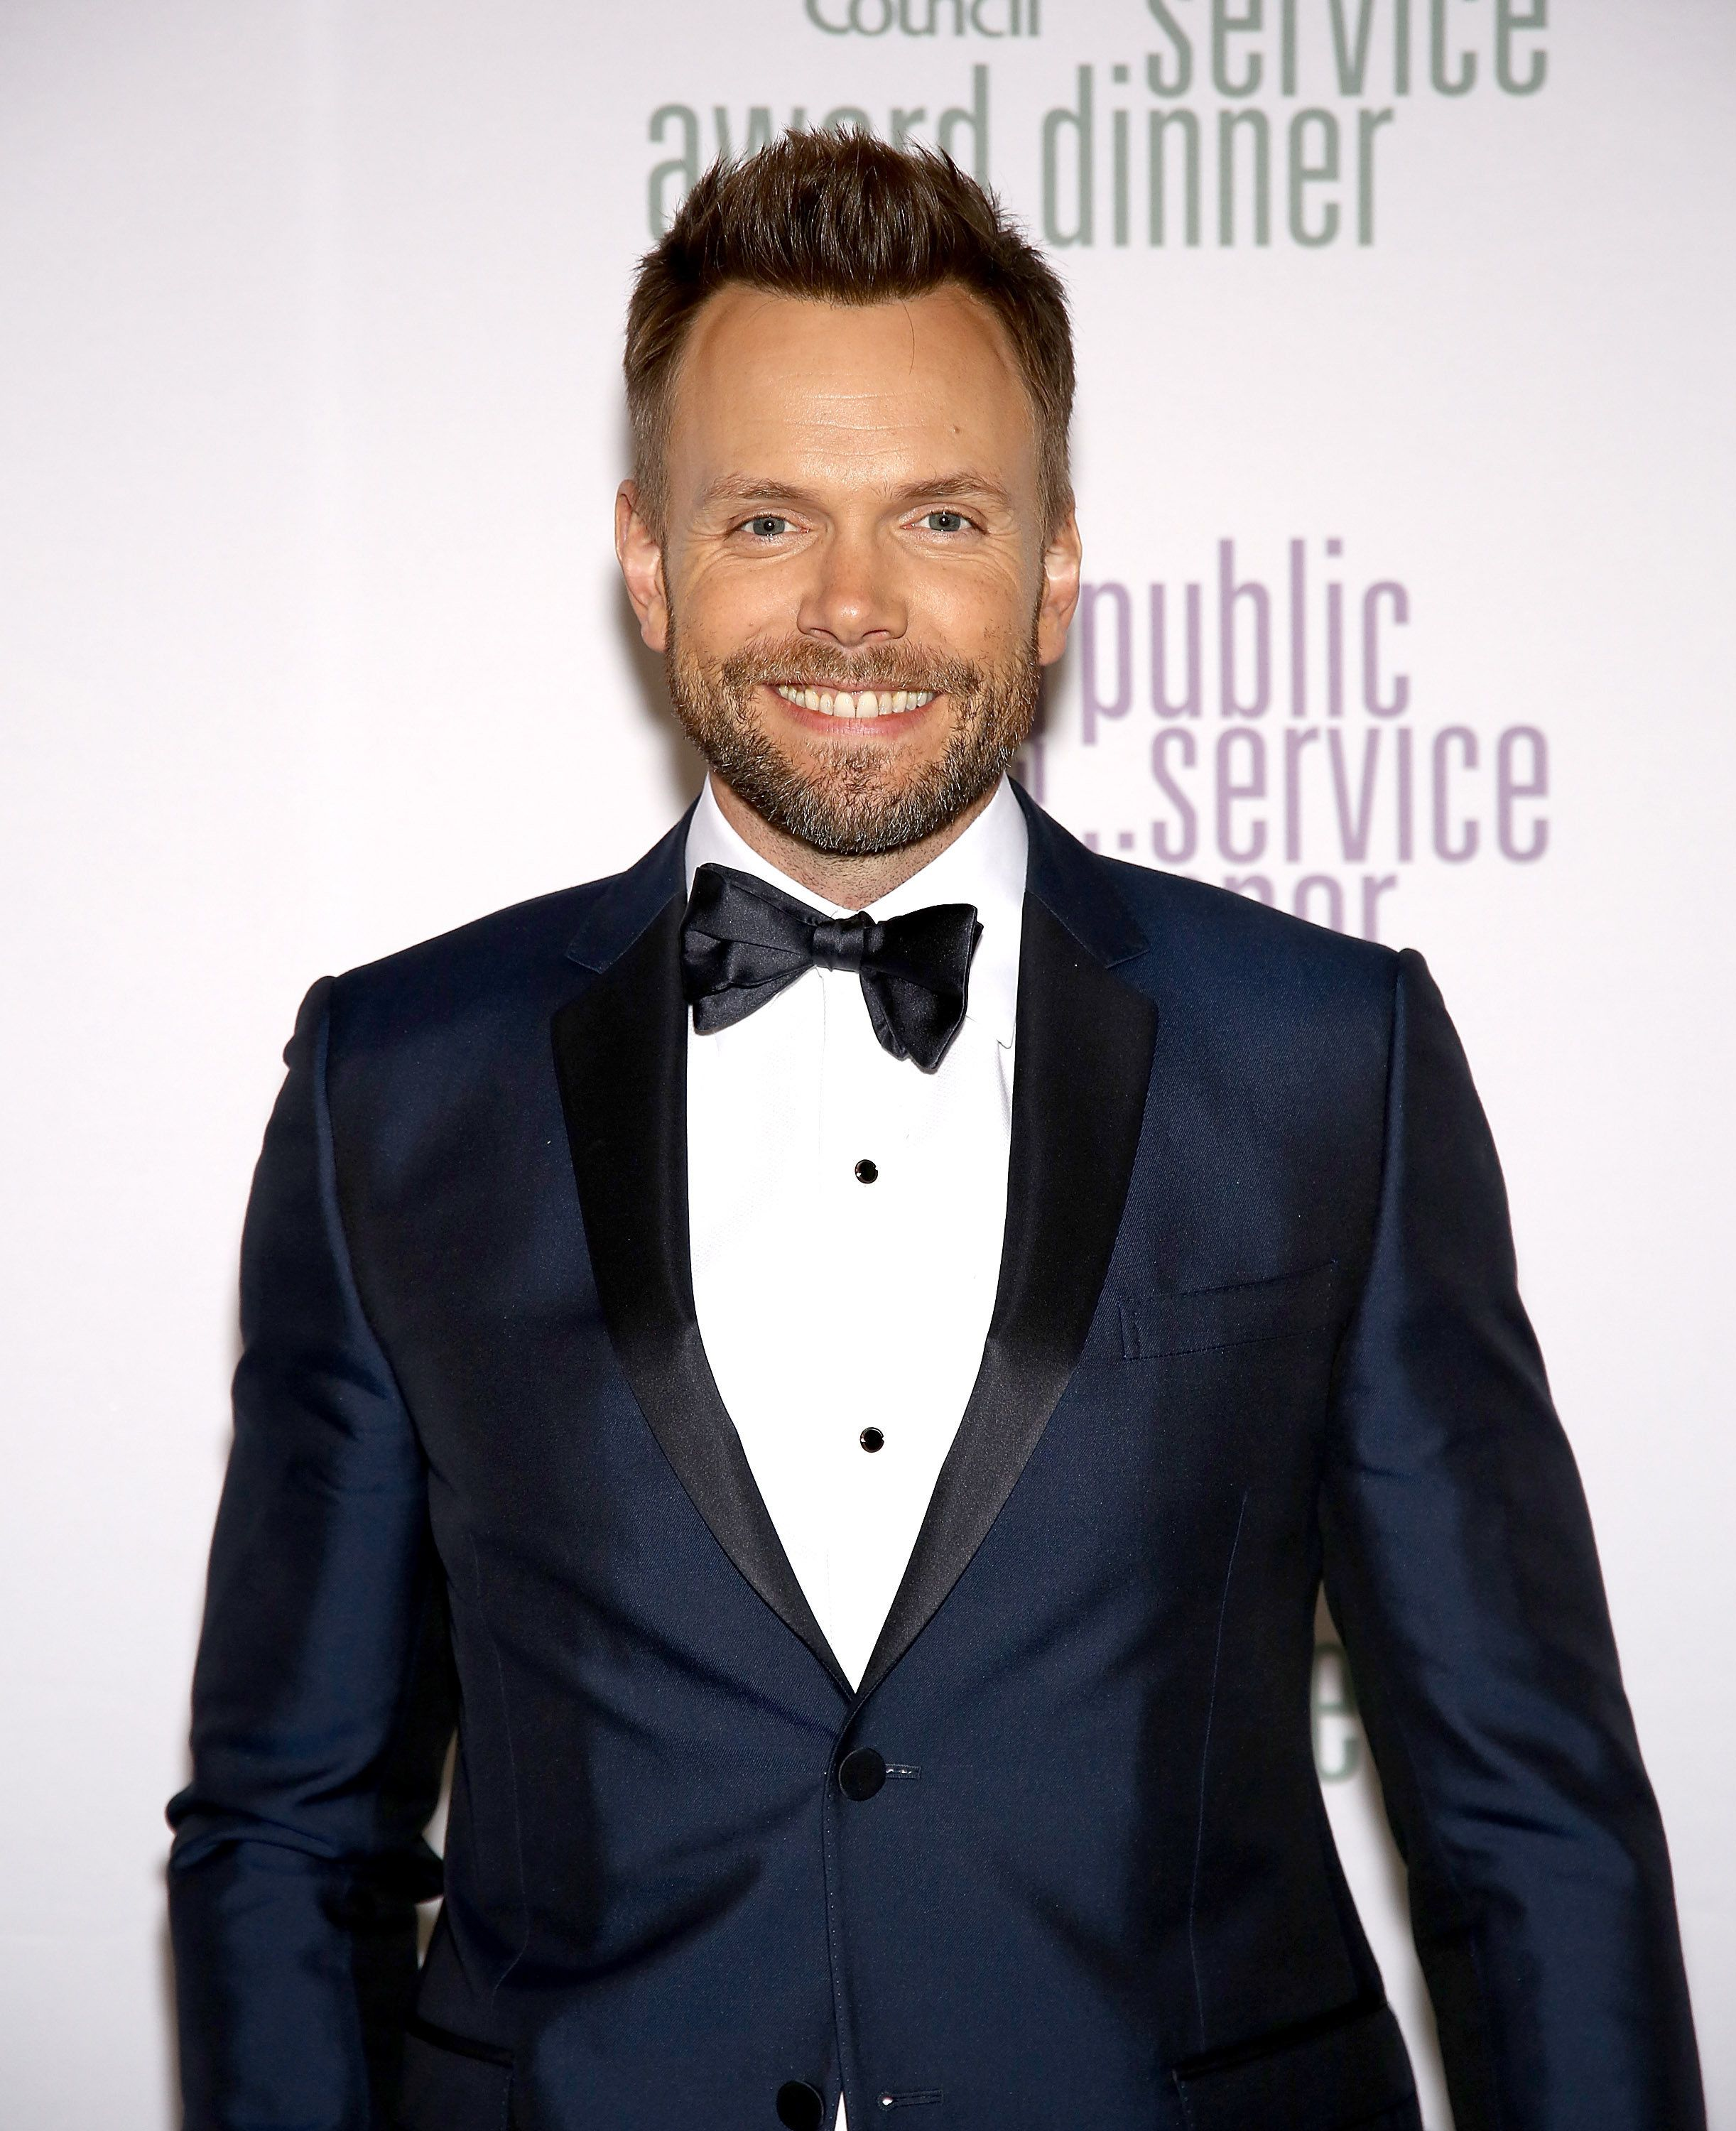 NEW YORK, NY - NOVEMBER 11:  Host Joel McHale attends the 2015 Ad Council Annual Public Service Award Dinner at The Waldorf=Astoria on November 11, 2015 in New York City.  (Photo by Paul Zimmerman/WireImage)